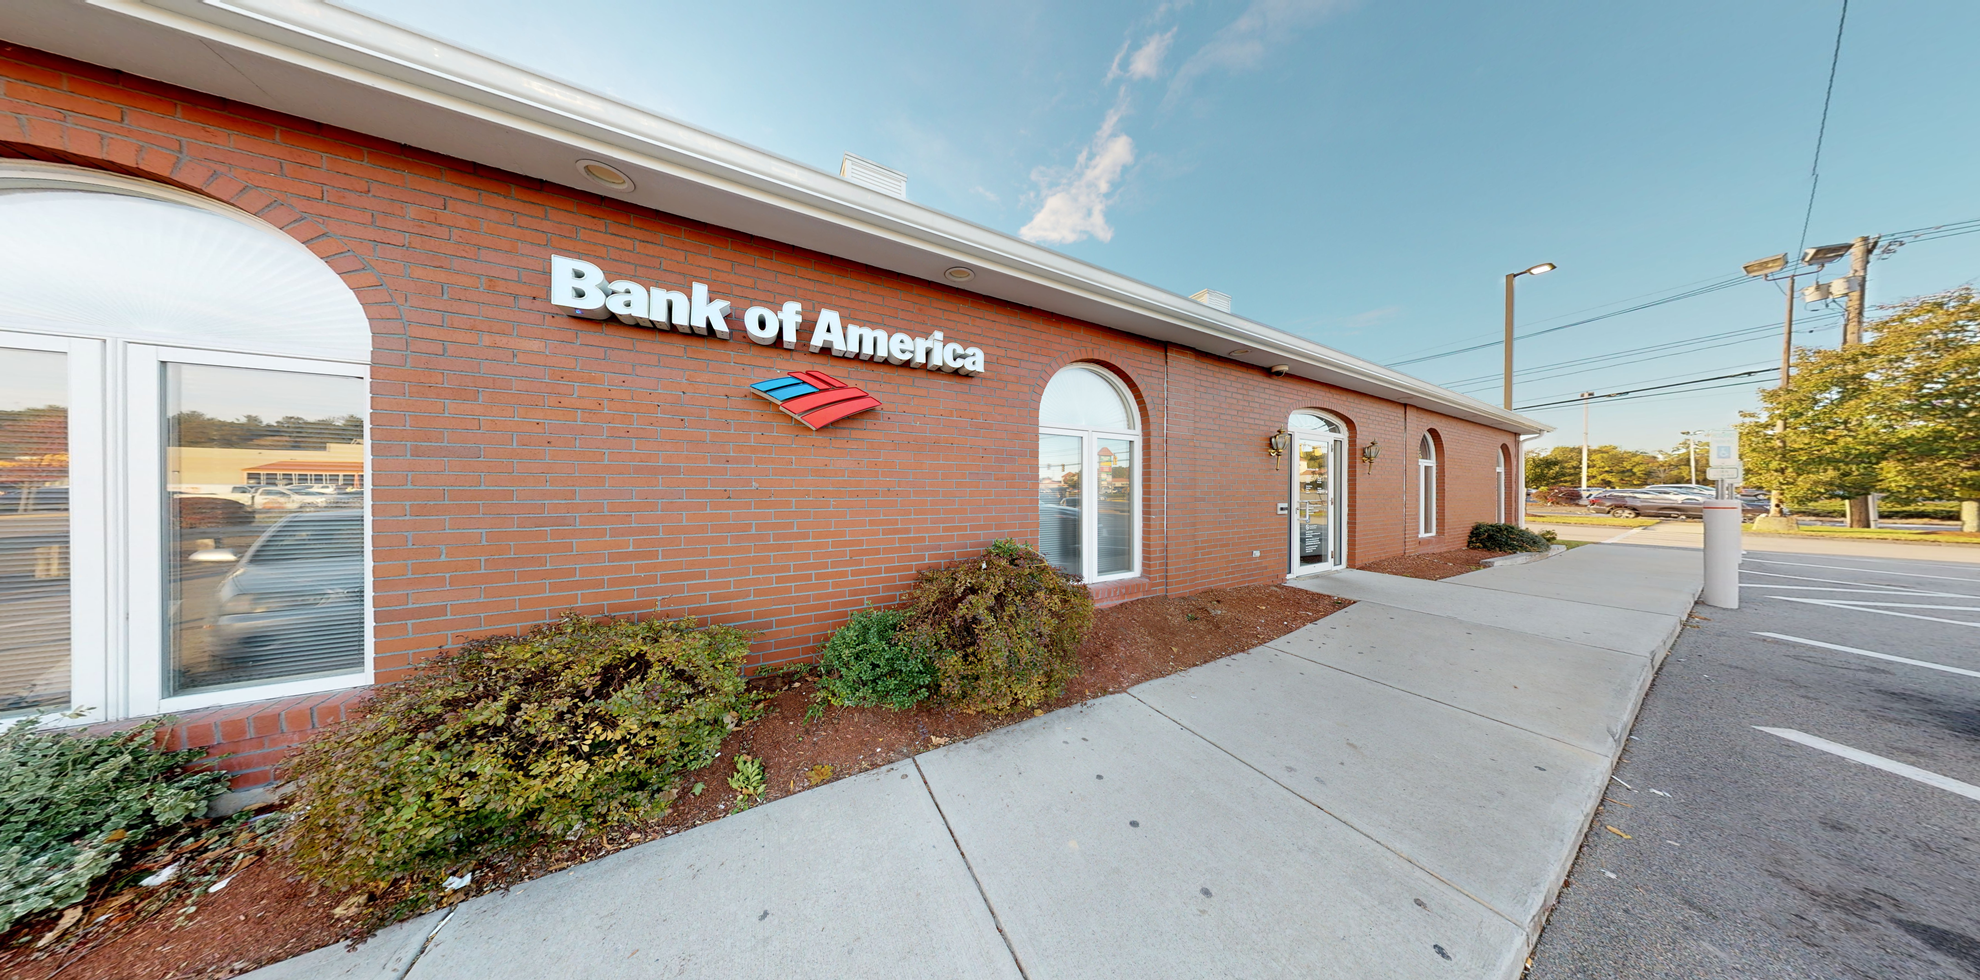 Bank of America financial center with walk-up ATM   695 Crescent St, Brockton, MA 02302